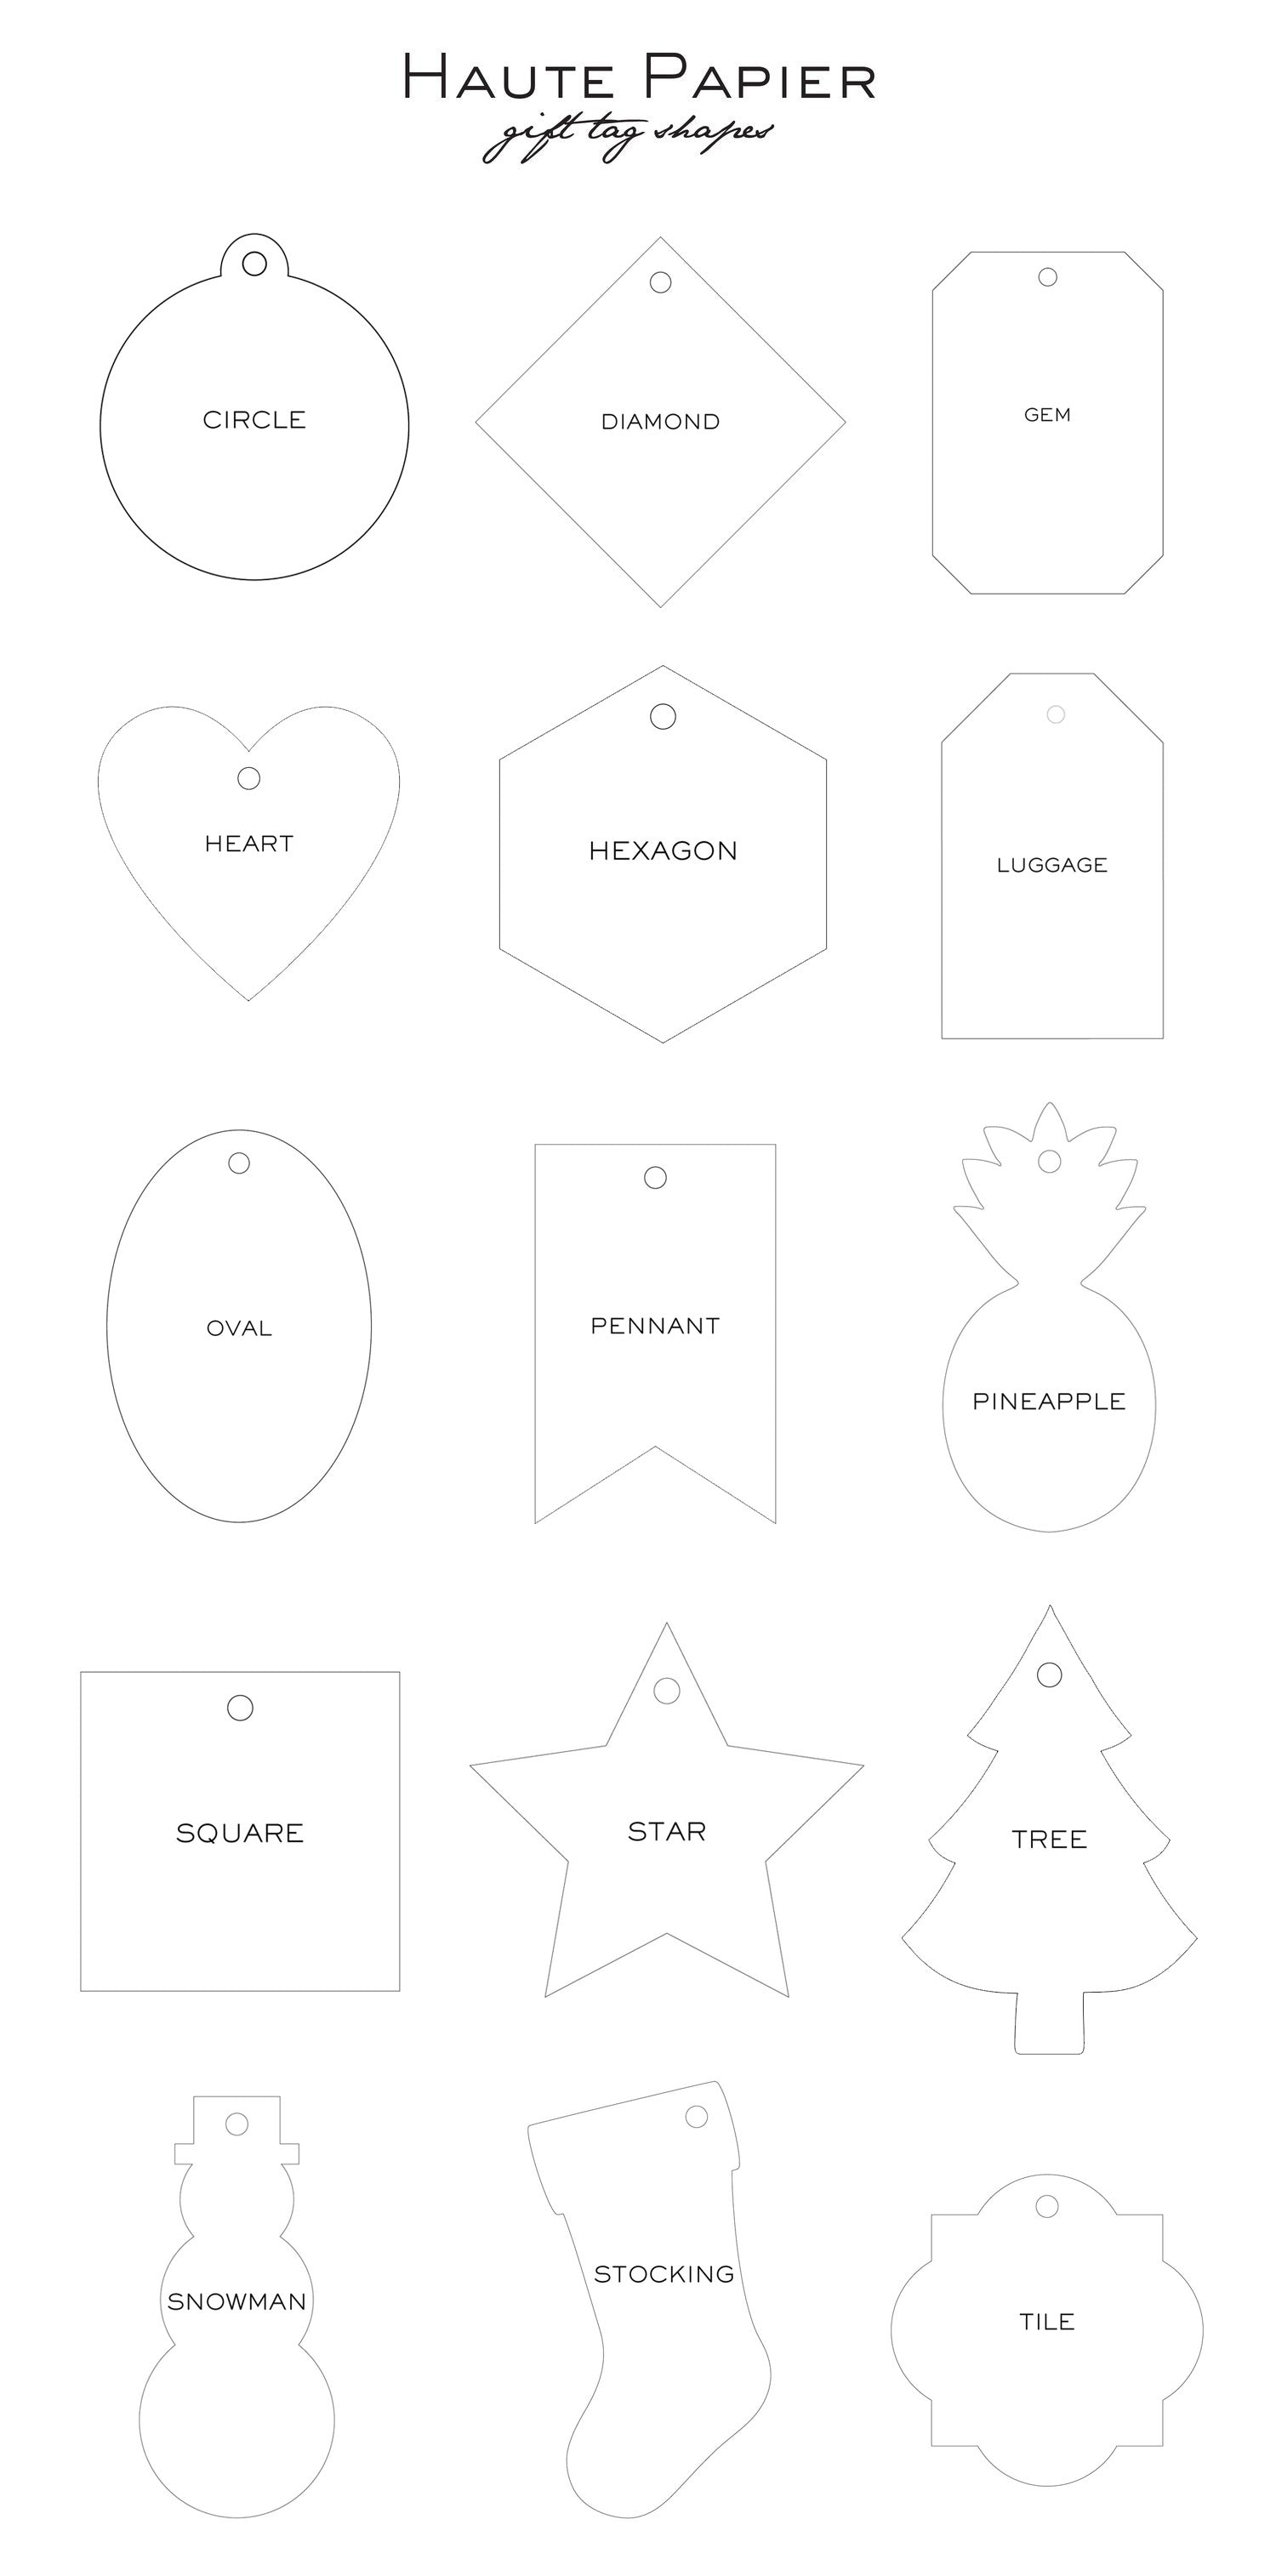 Haute Papier Gift Tag-T4 (Customizable)